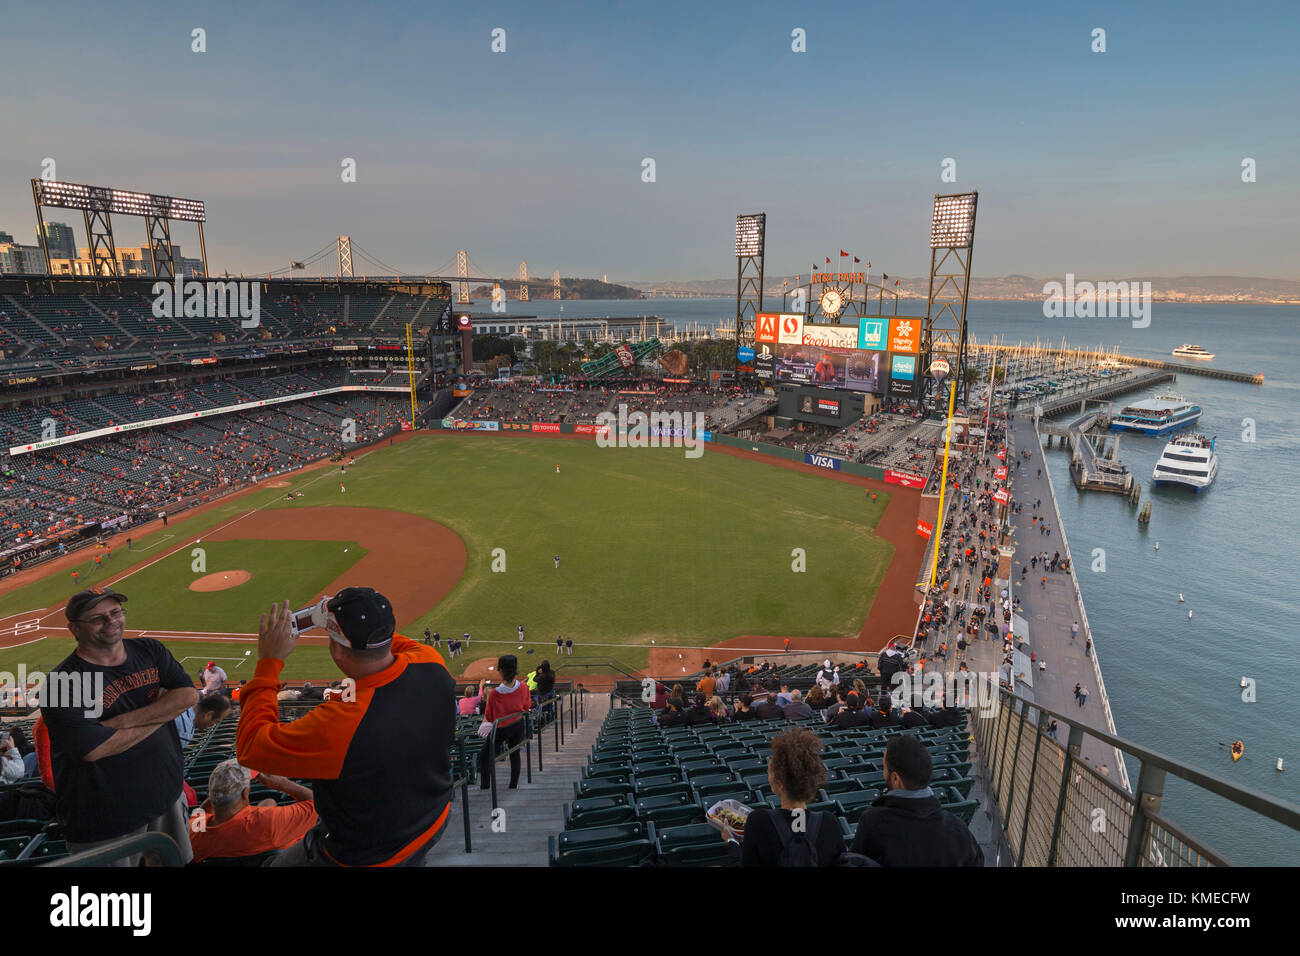 Att Ballpark, casa do time de beisebol san francisco giants, San Francisco, Califórnia, Estados Unidos da América Imagens de Stock